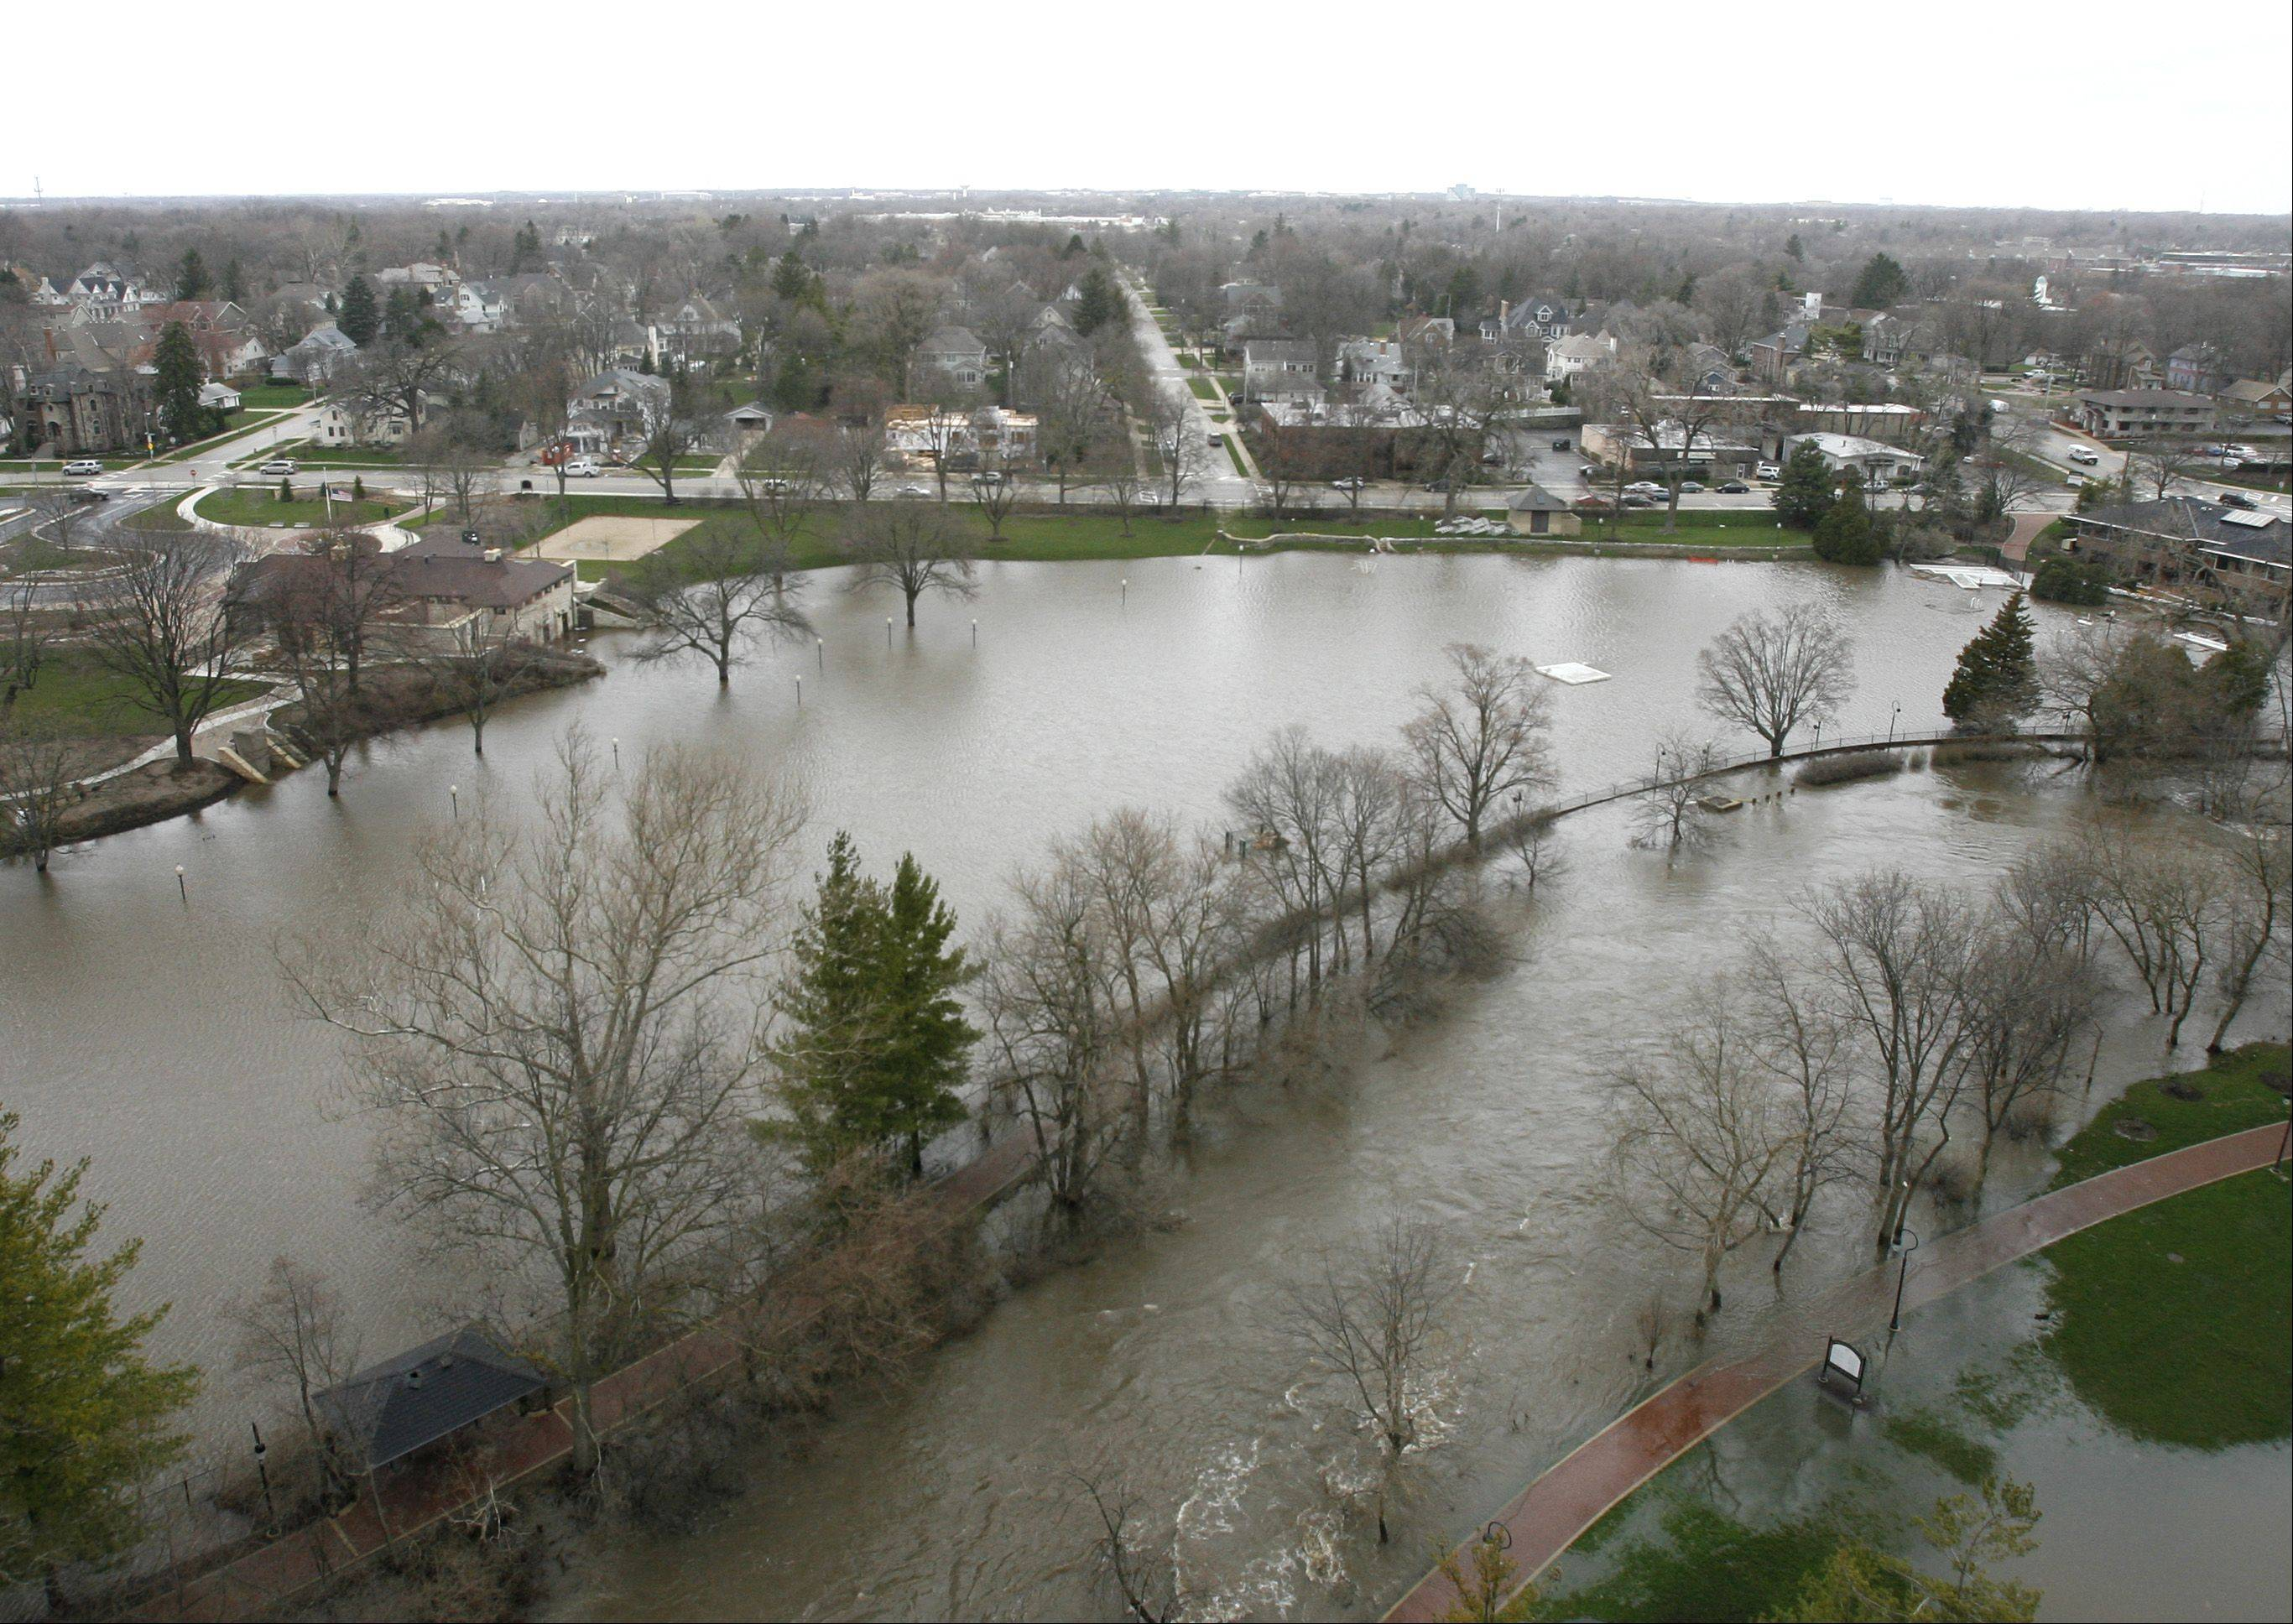 Water spilled well over the banks of Centennial Beach in Naperville.